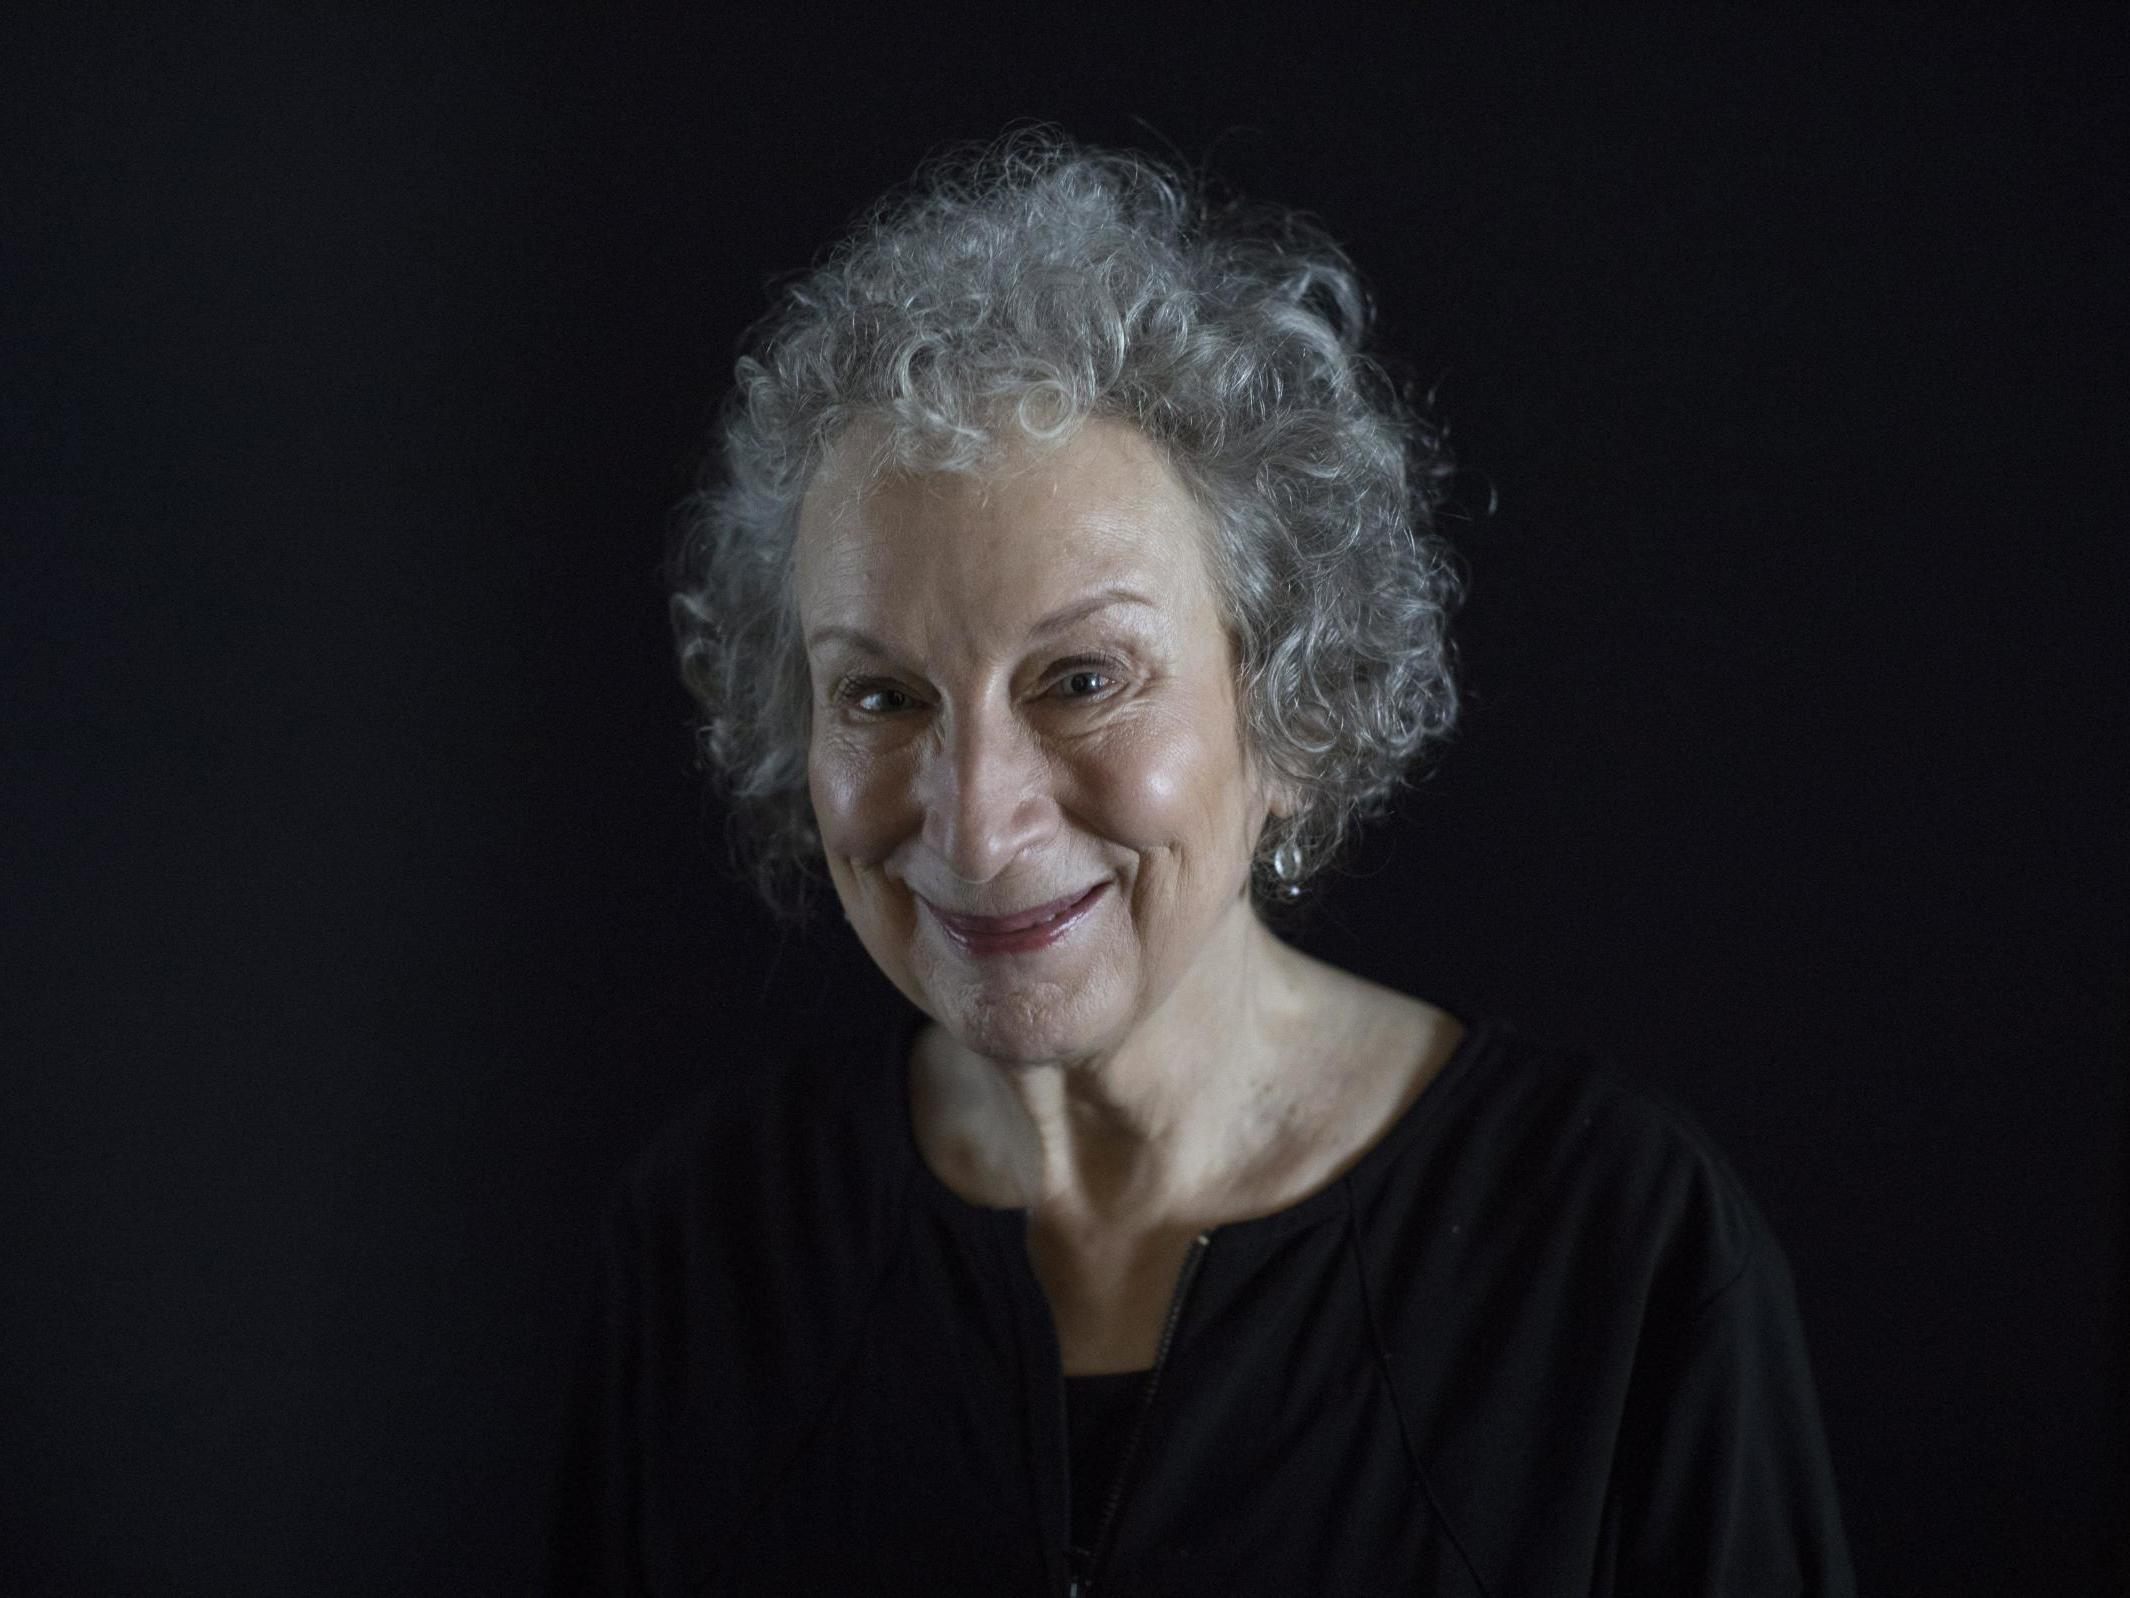 Margaret Atwood interview: 'White supremacy is always bubbling away in any country'